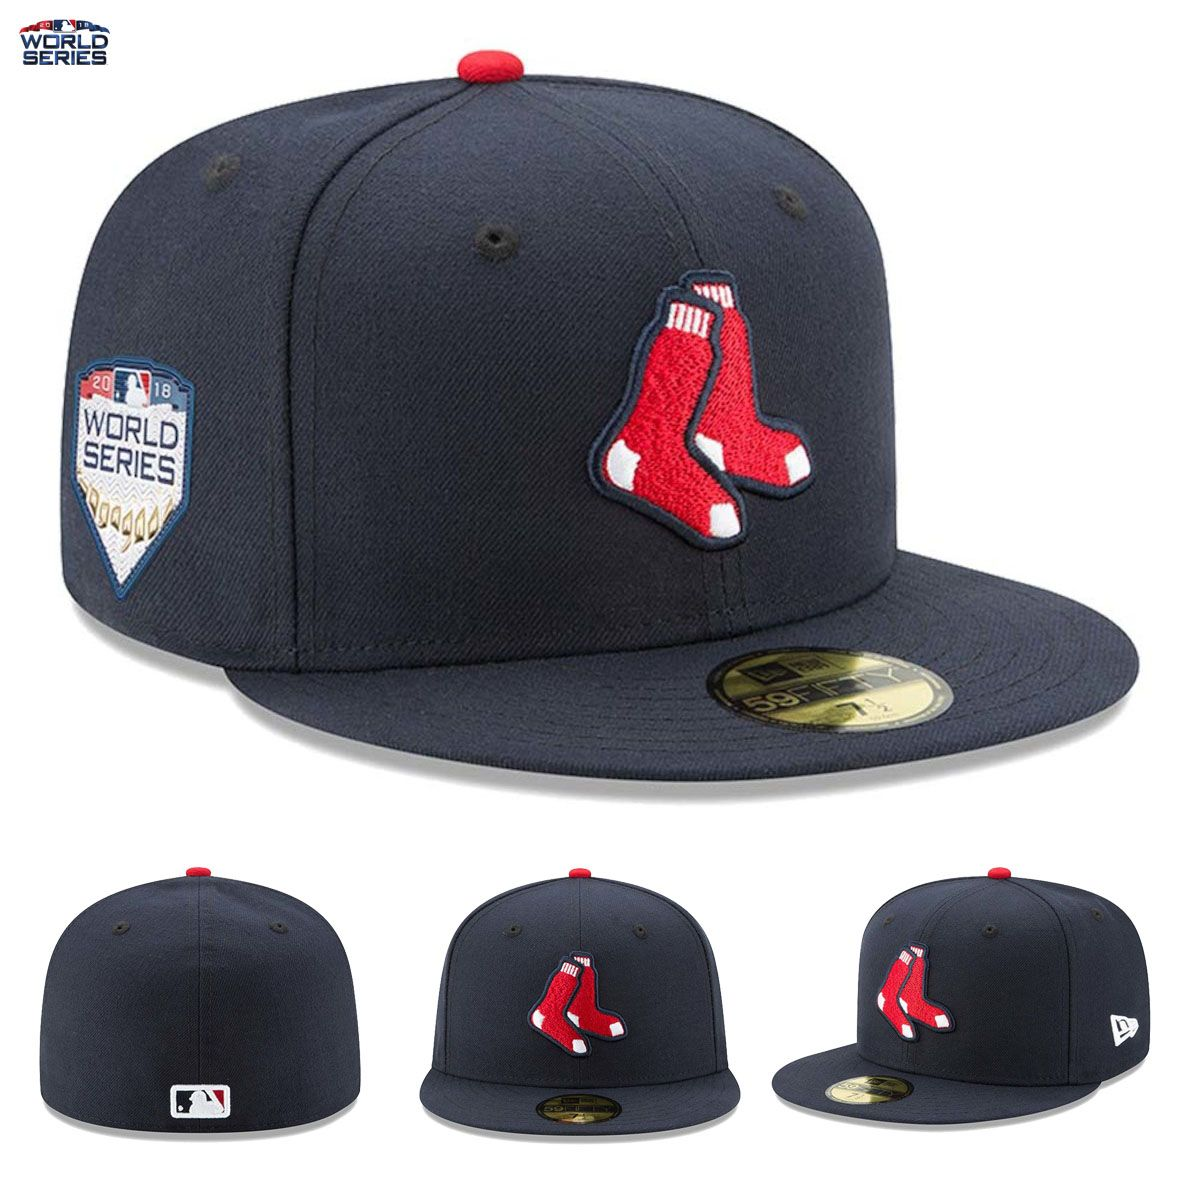 70194b7200854 Boston Red Sox New Era 59FIFTY Fitted Hat Cap 2018 World Series Bound Side  Patch THEY MADE IT!!!! Boston Red Sox Are Officially World Series Material!!